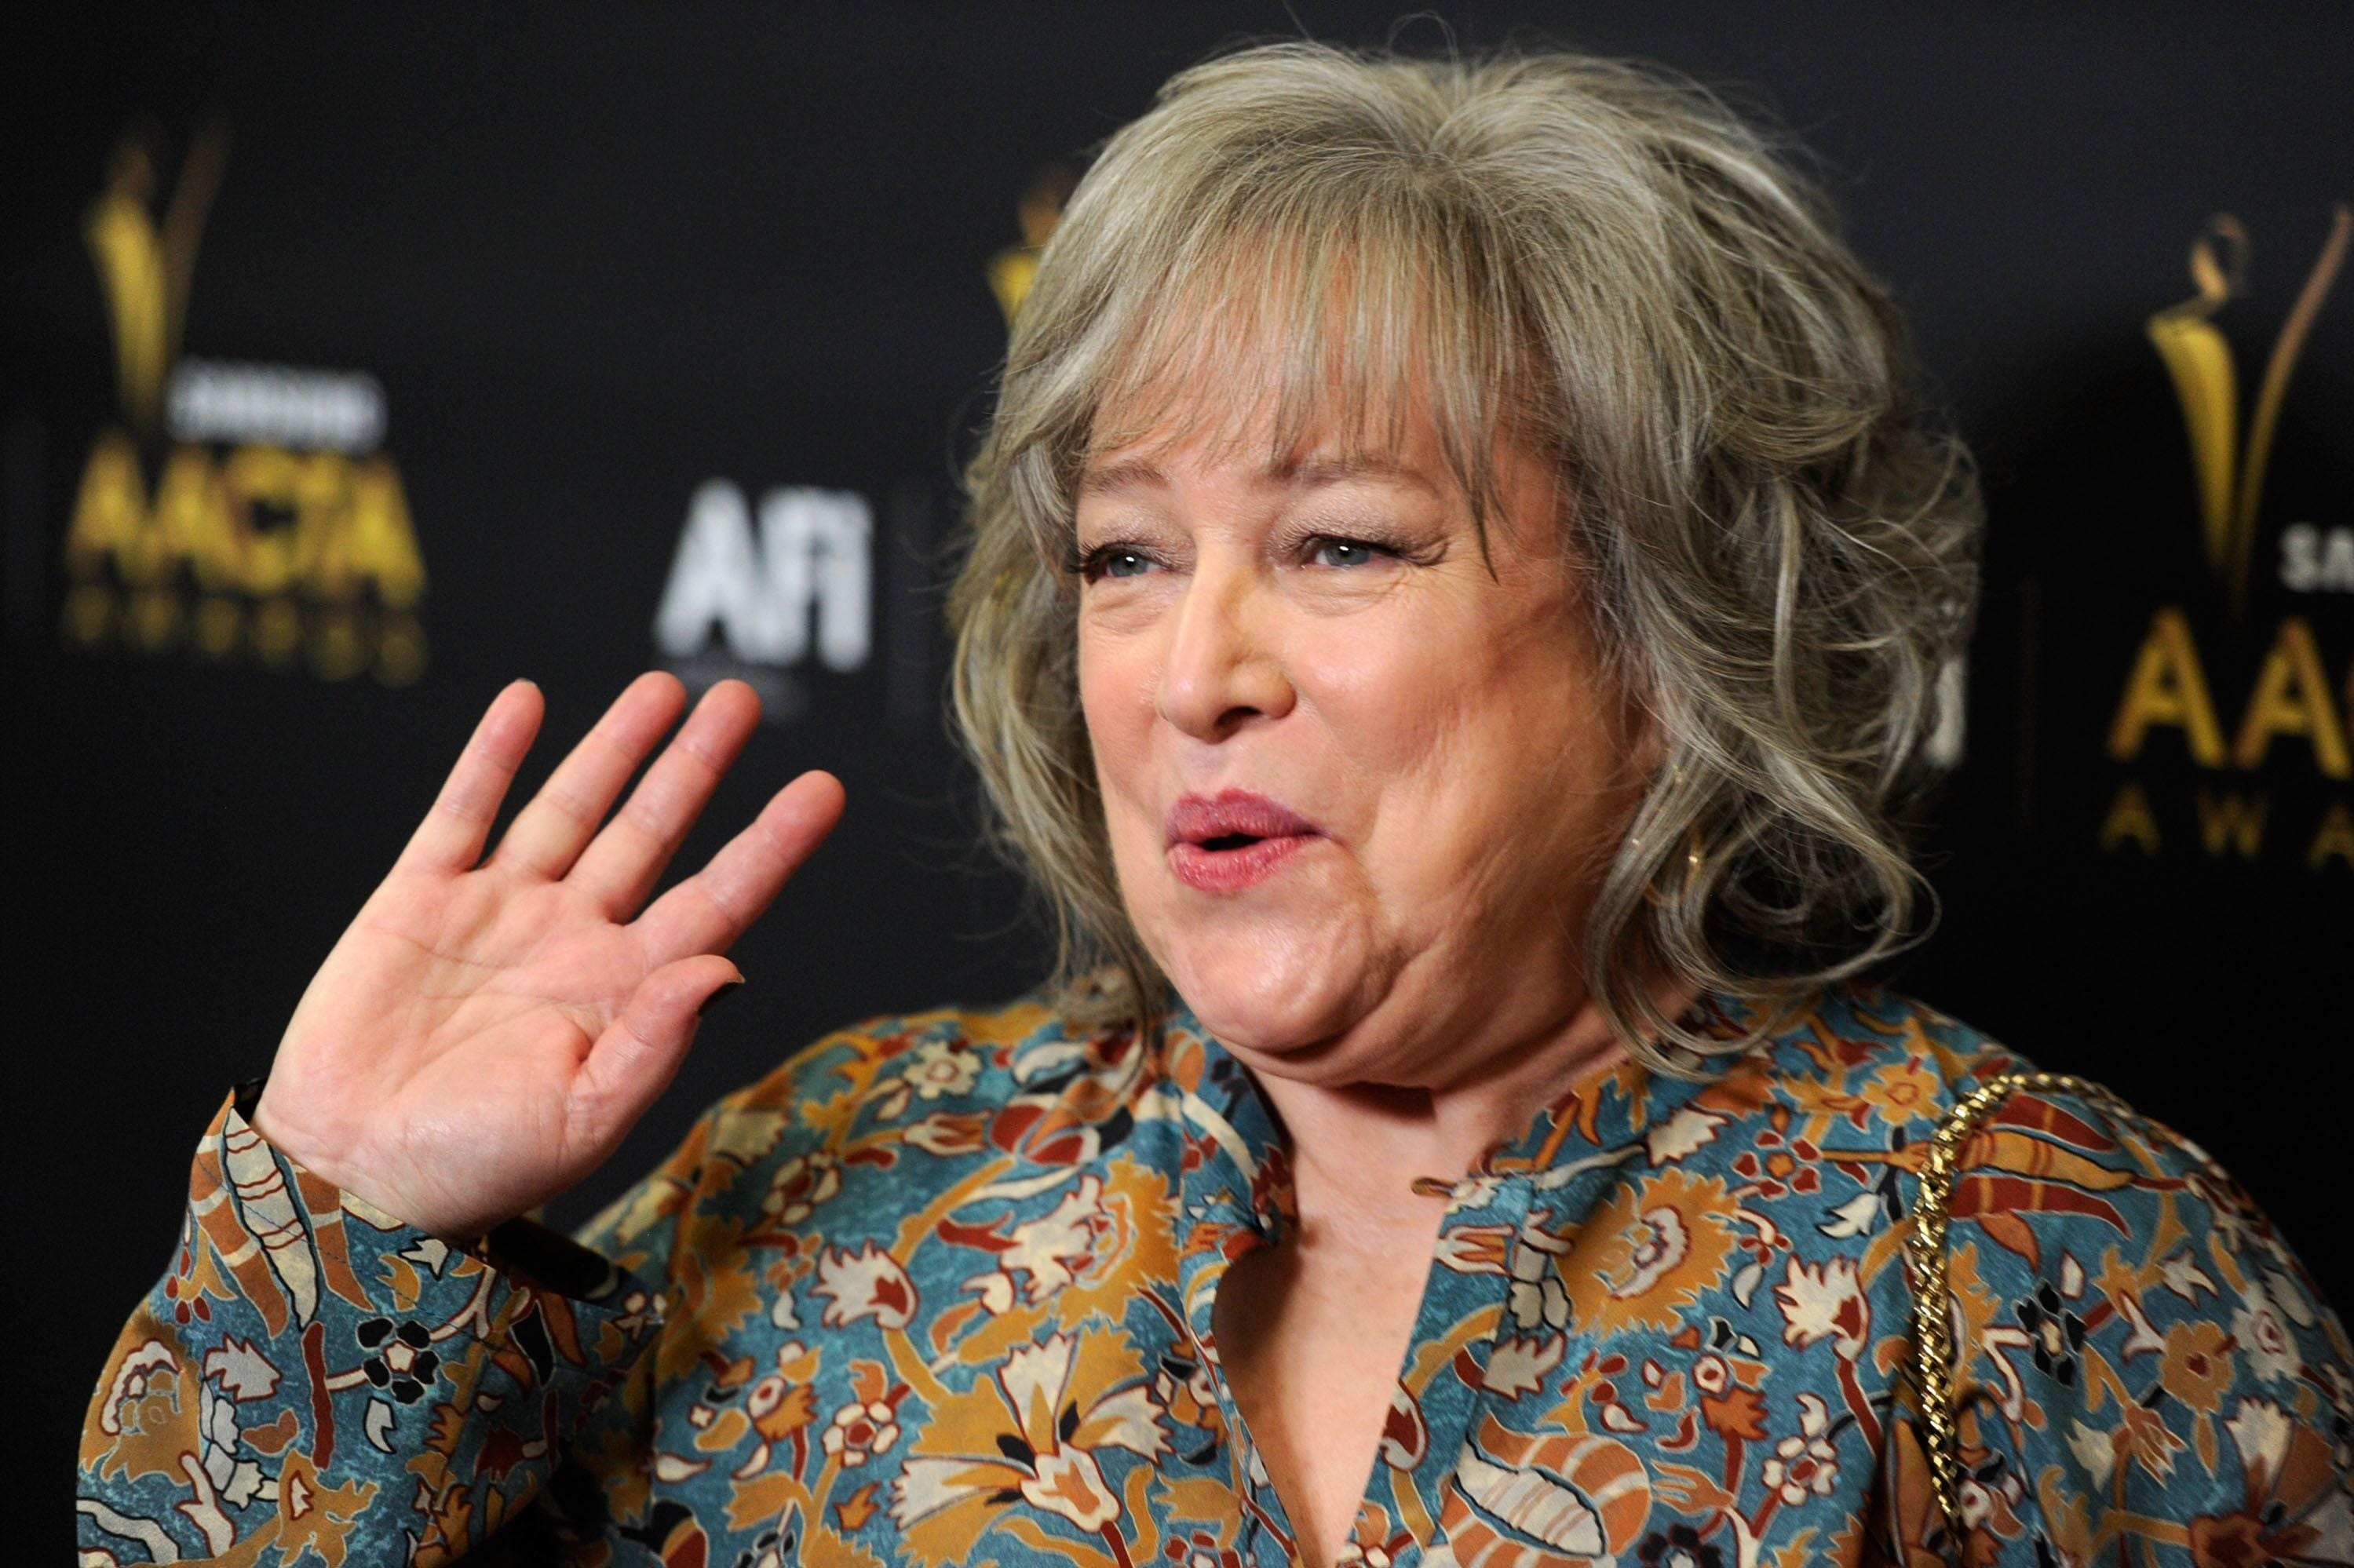 Kathy Bates Rankings & Opinions